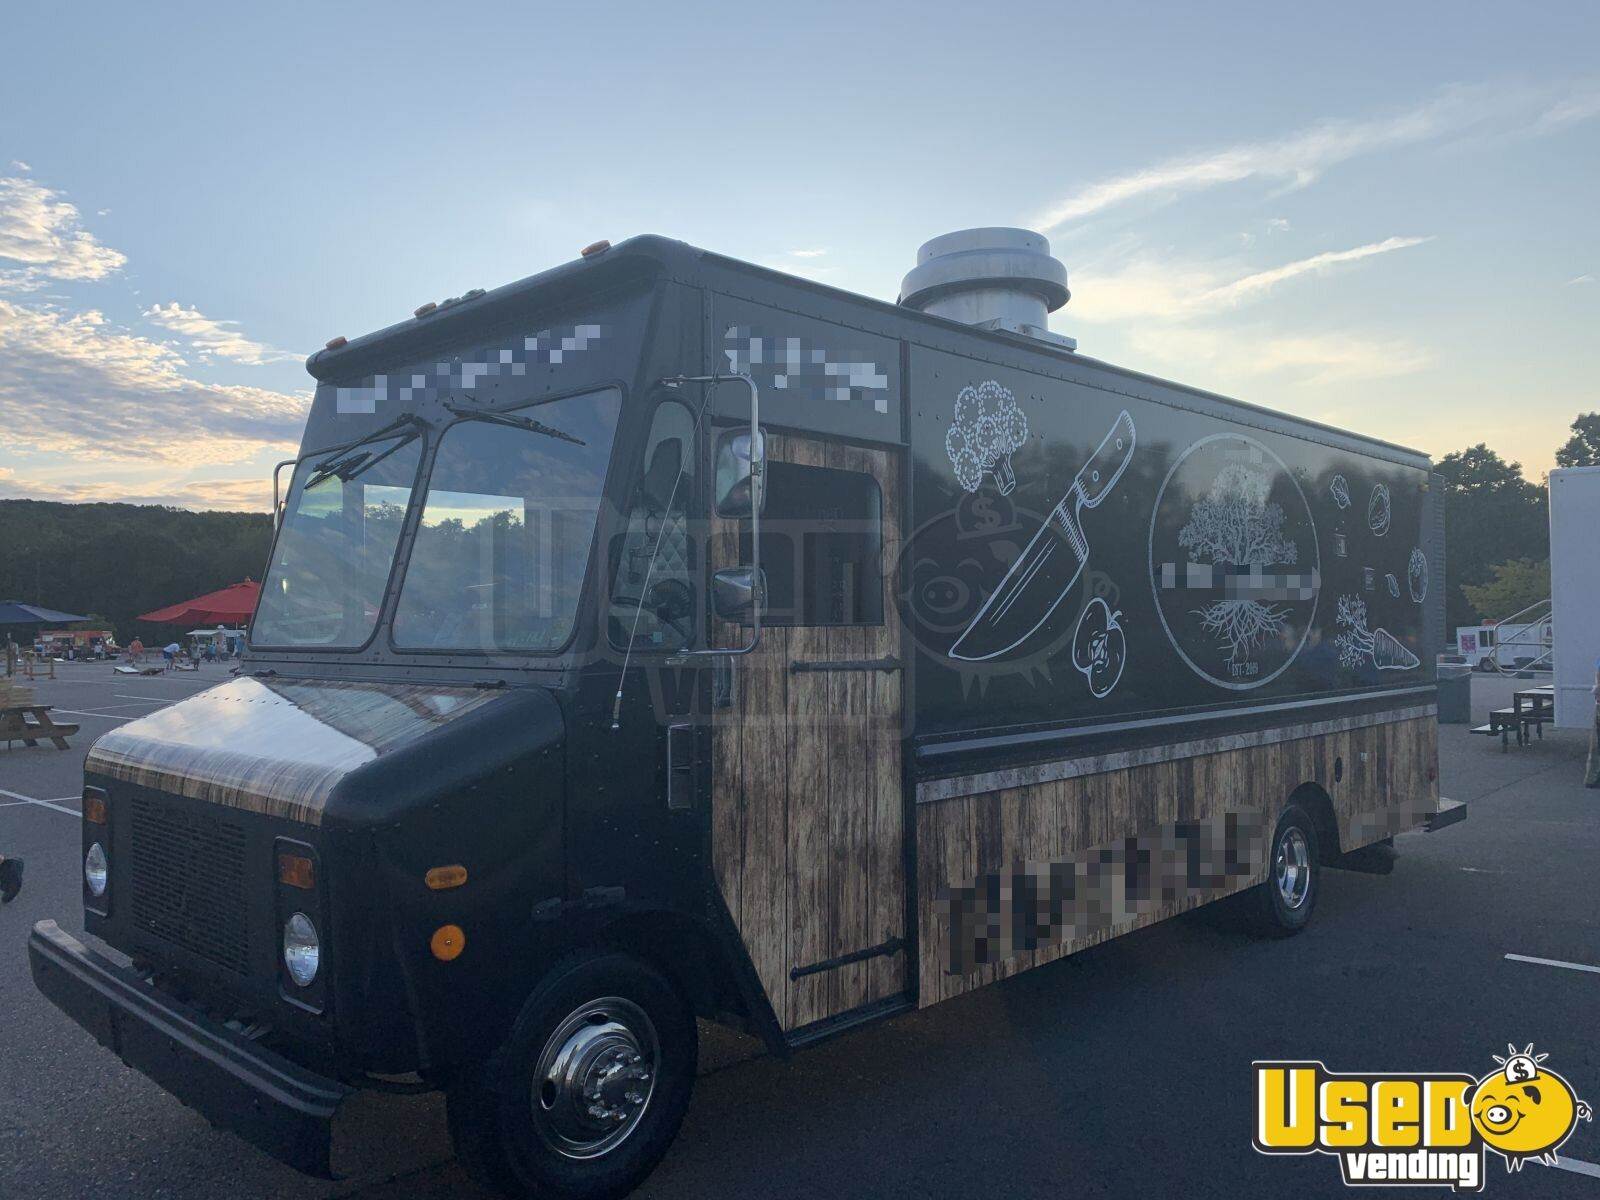 1997 Workhorse P30 Step Van Kitchen Food Truck All-purpose Food Truck Concession Window Connecticut Gas Engine for Sale - 3